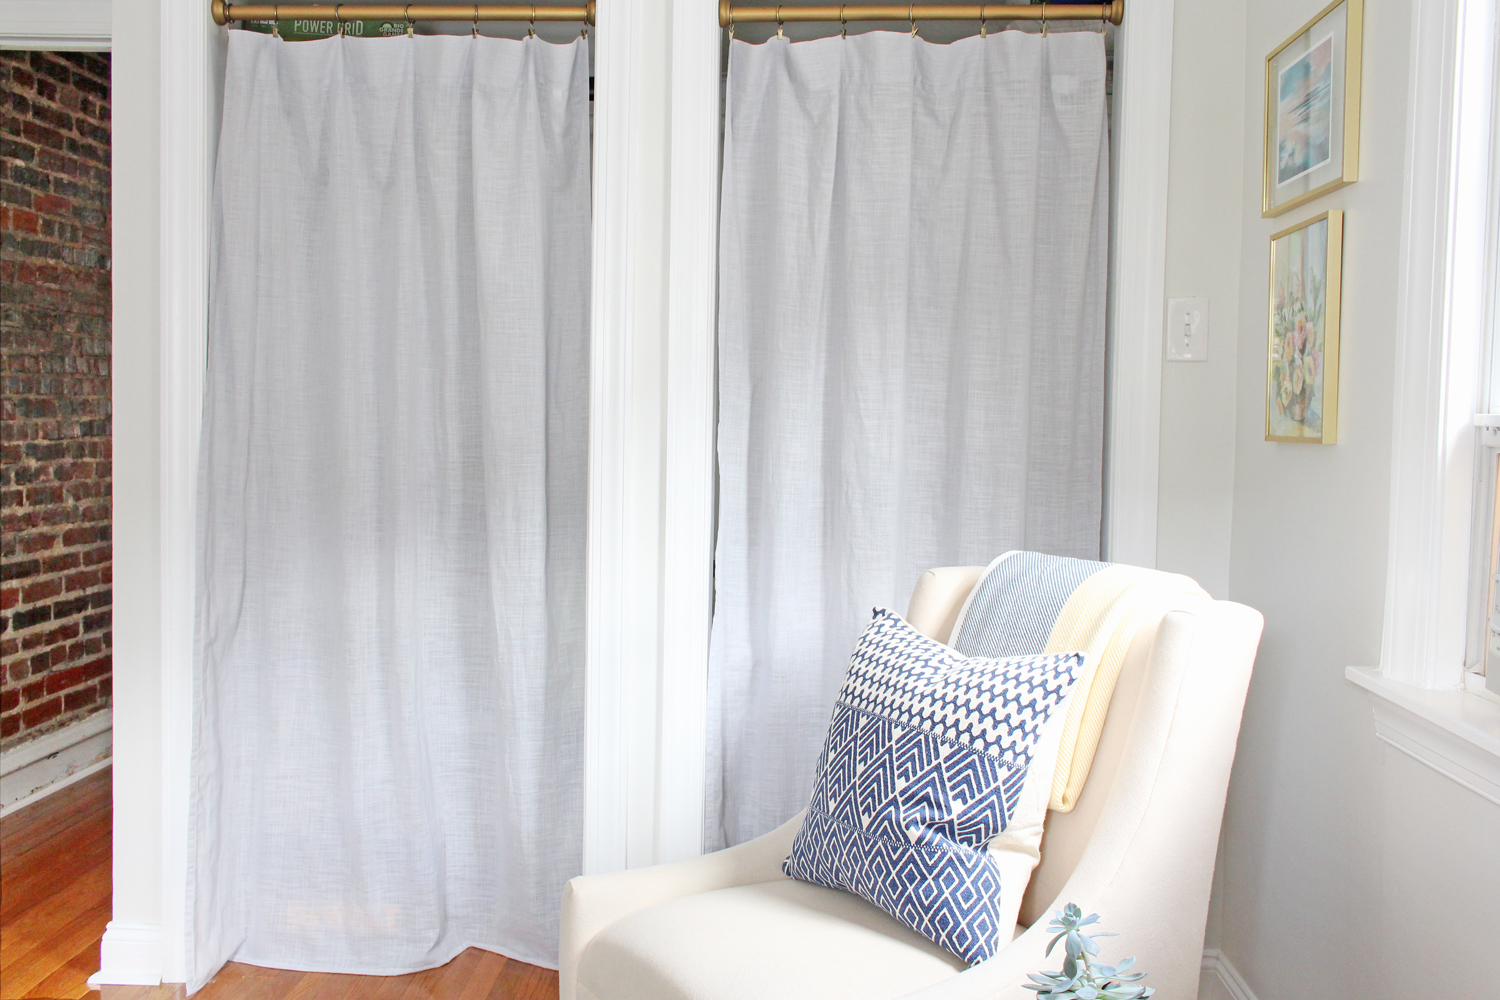 Creative closet solution: use curtains instead of bifold doors.